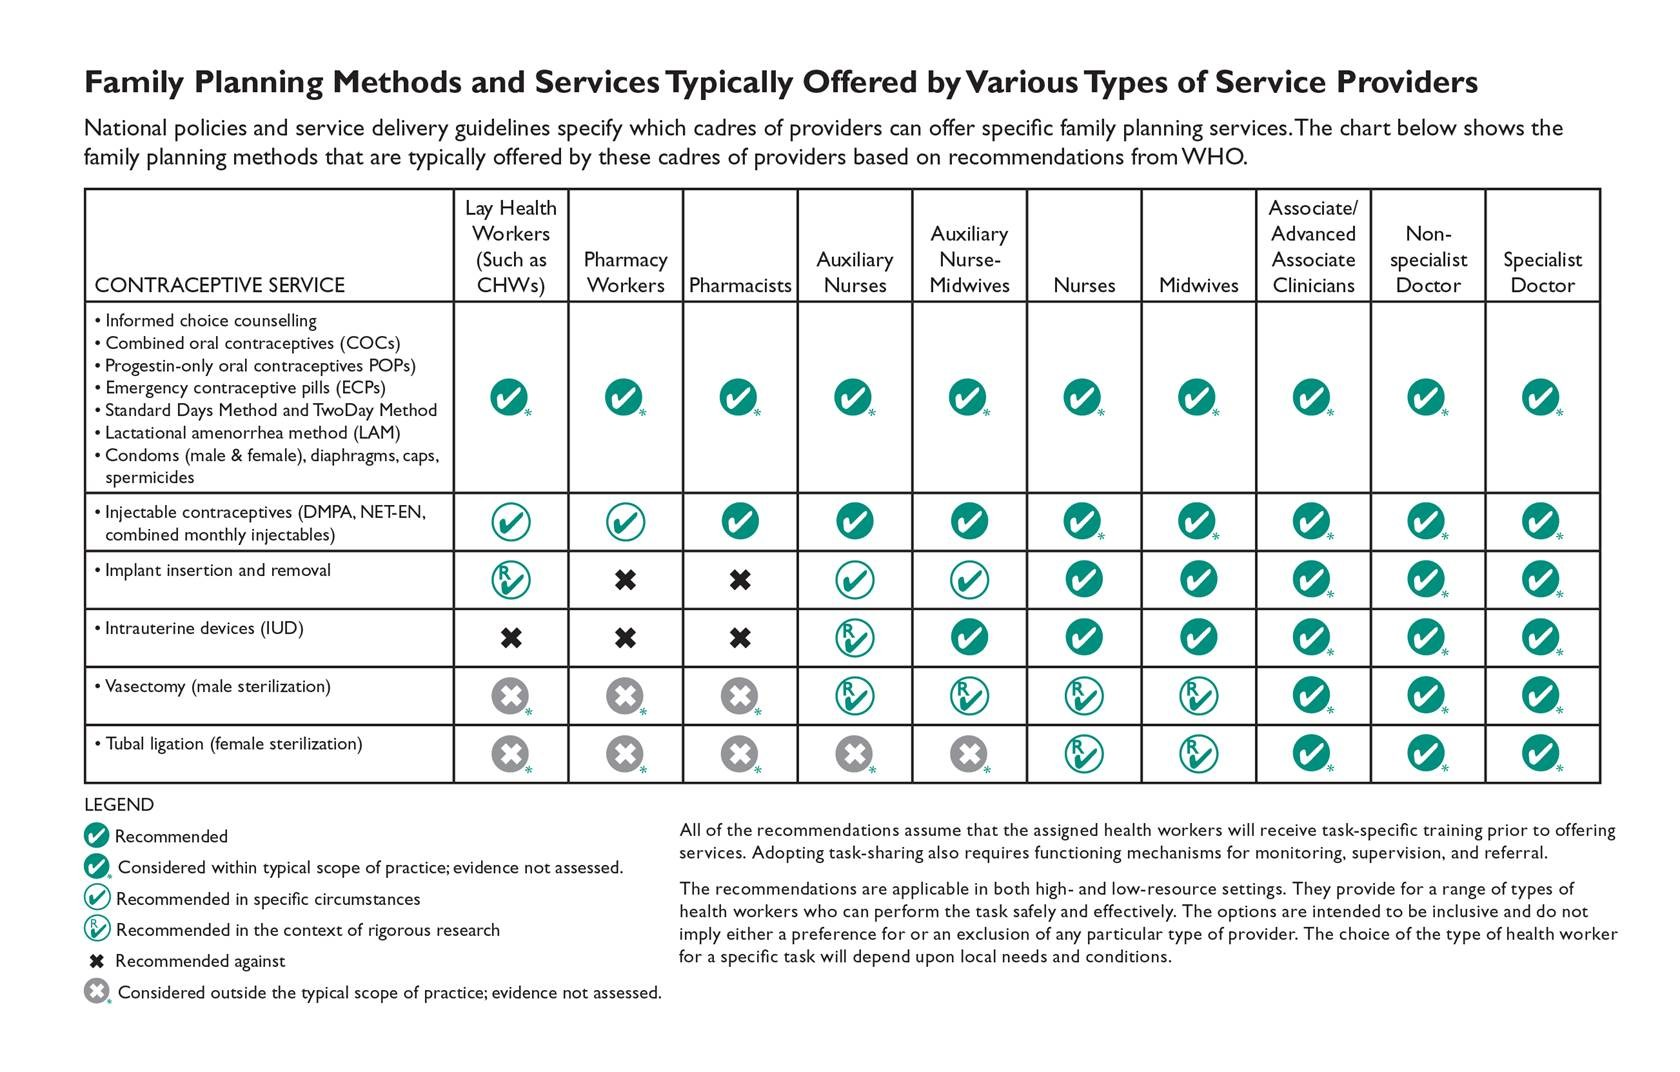 Methods and Services